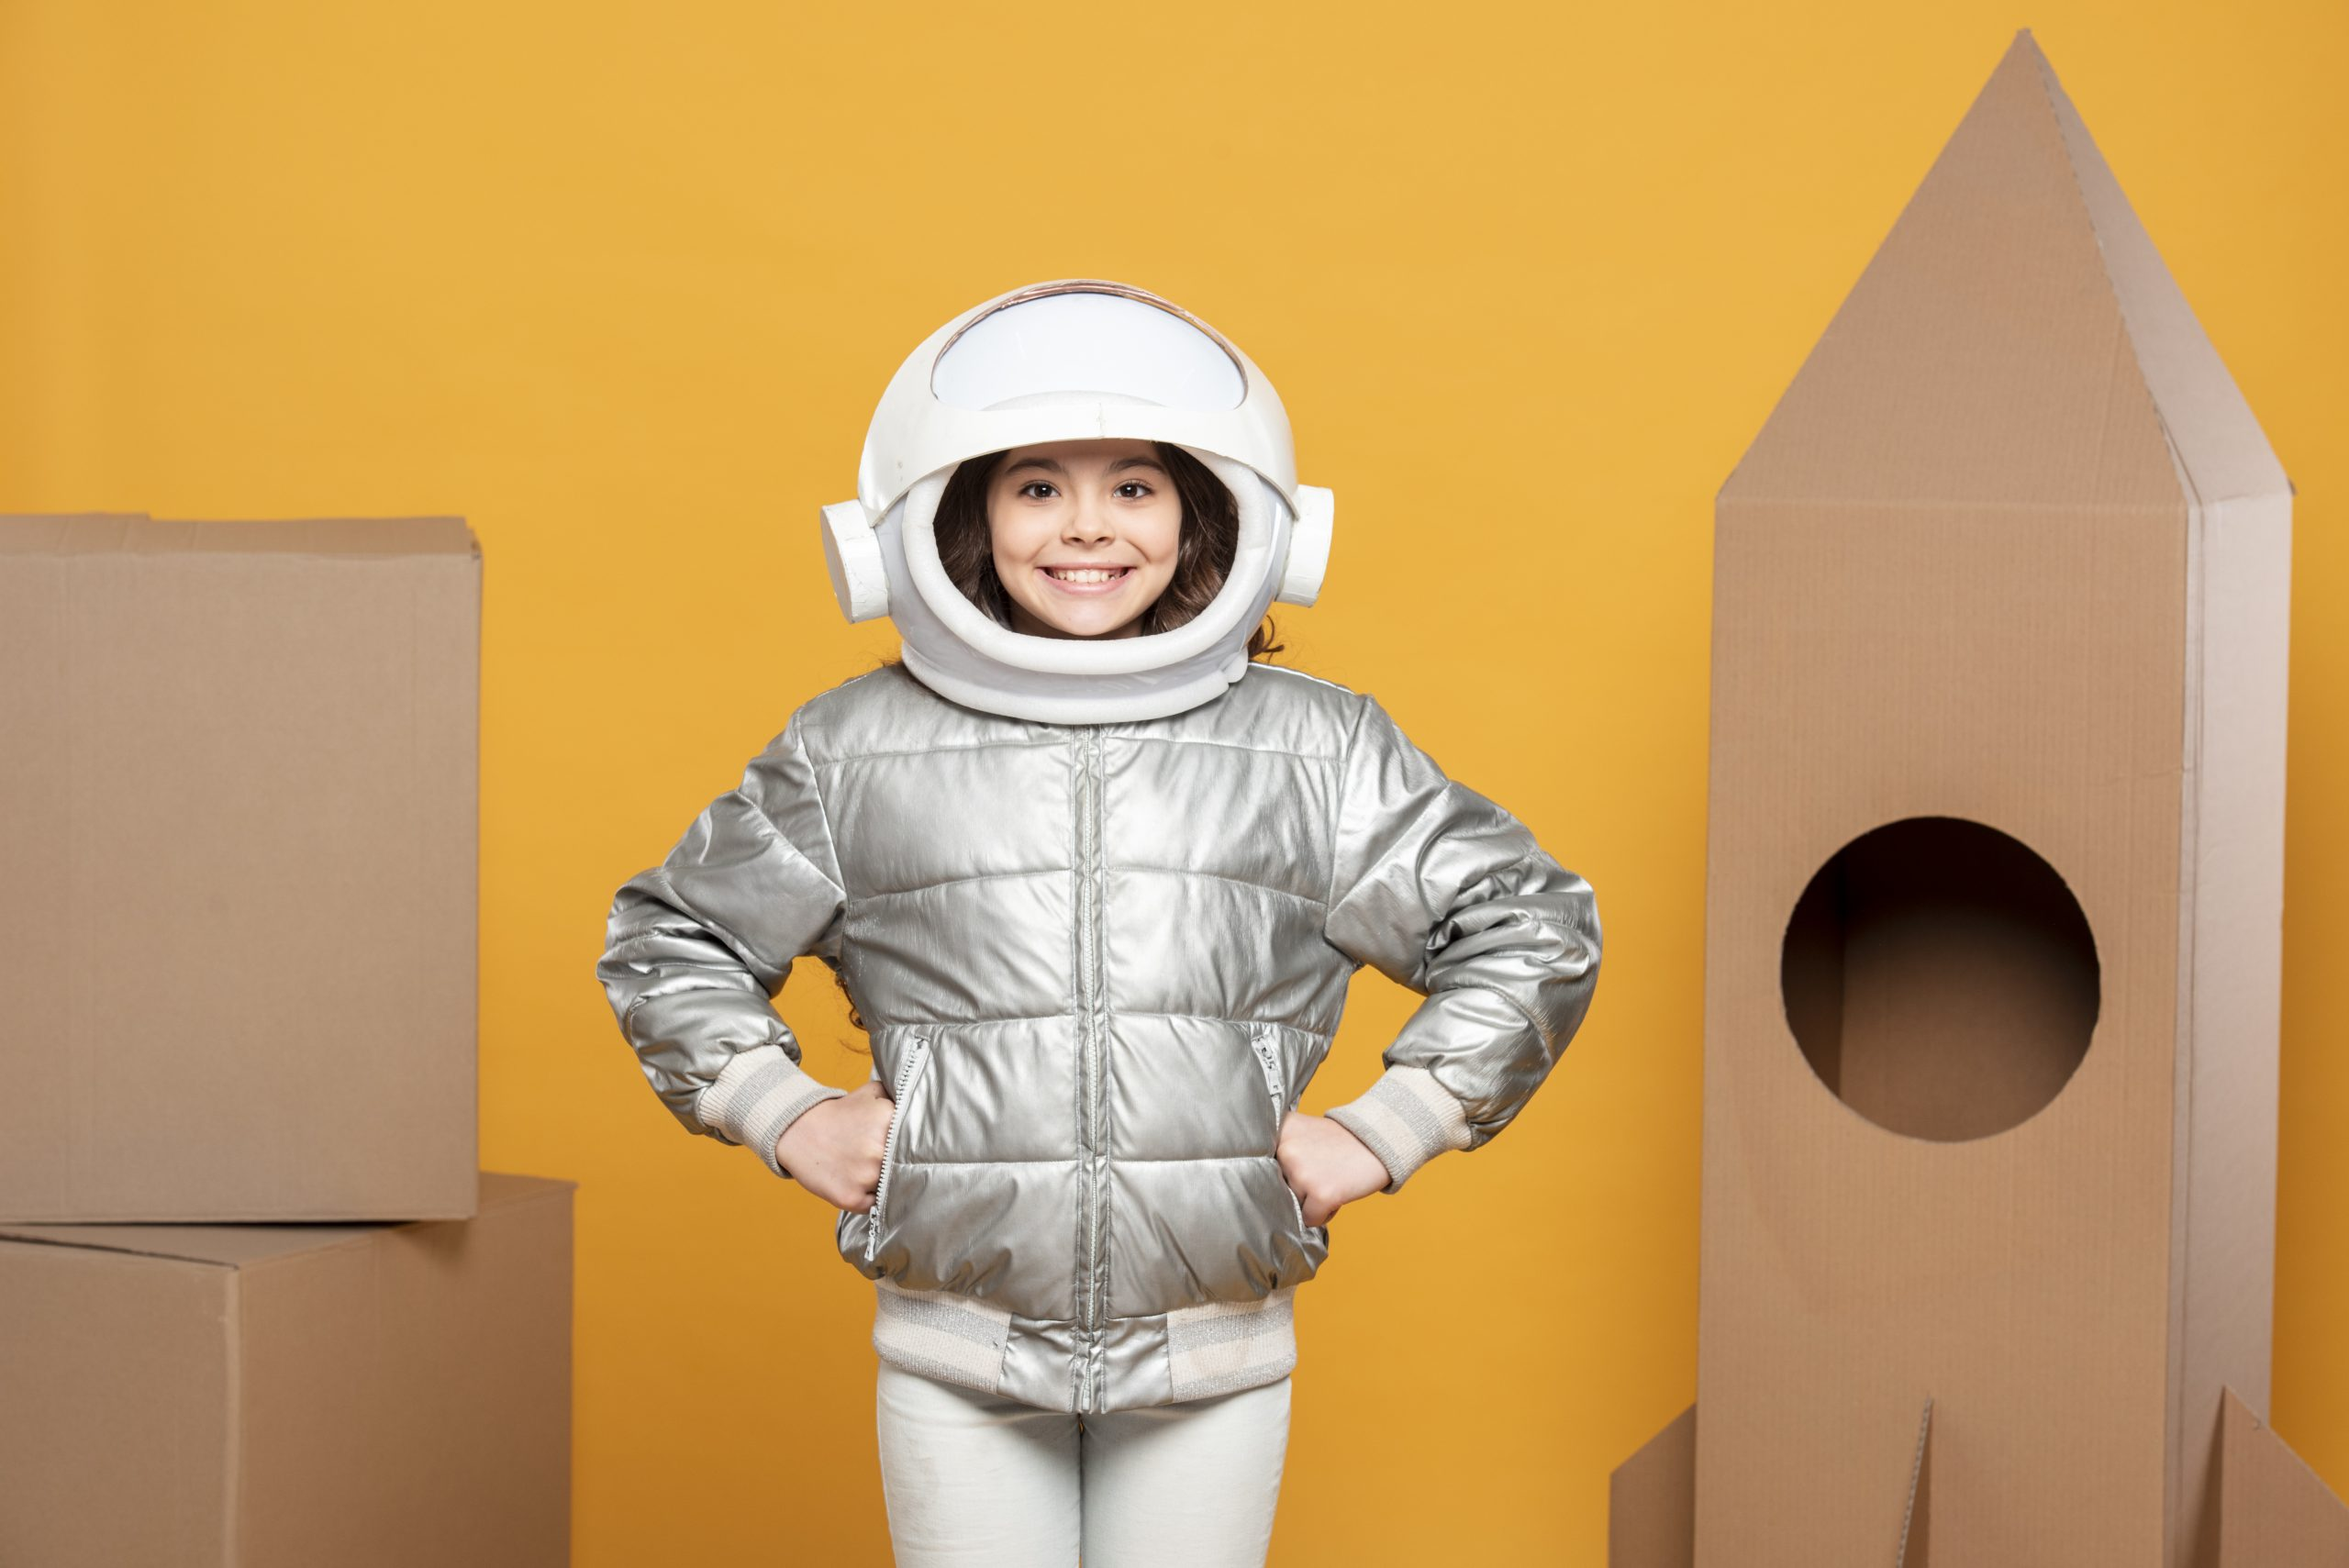 girl-with-space-helmet-ship-made-carton-scaled.jpg